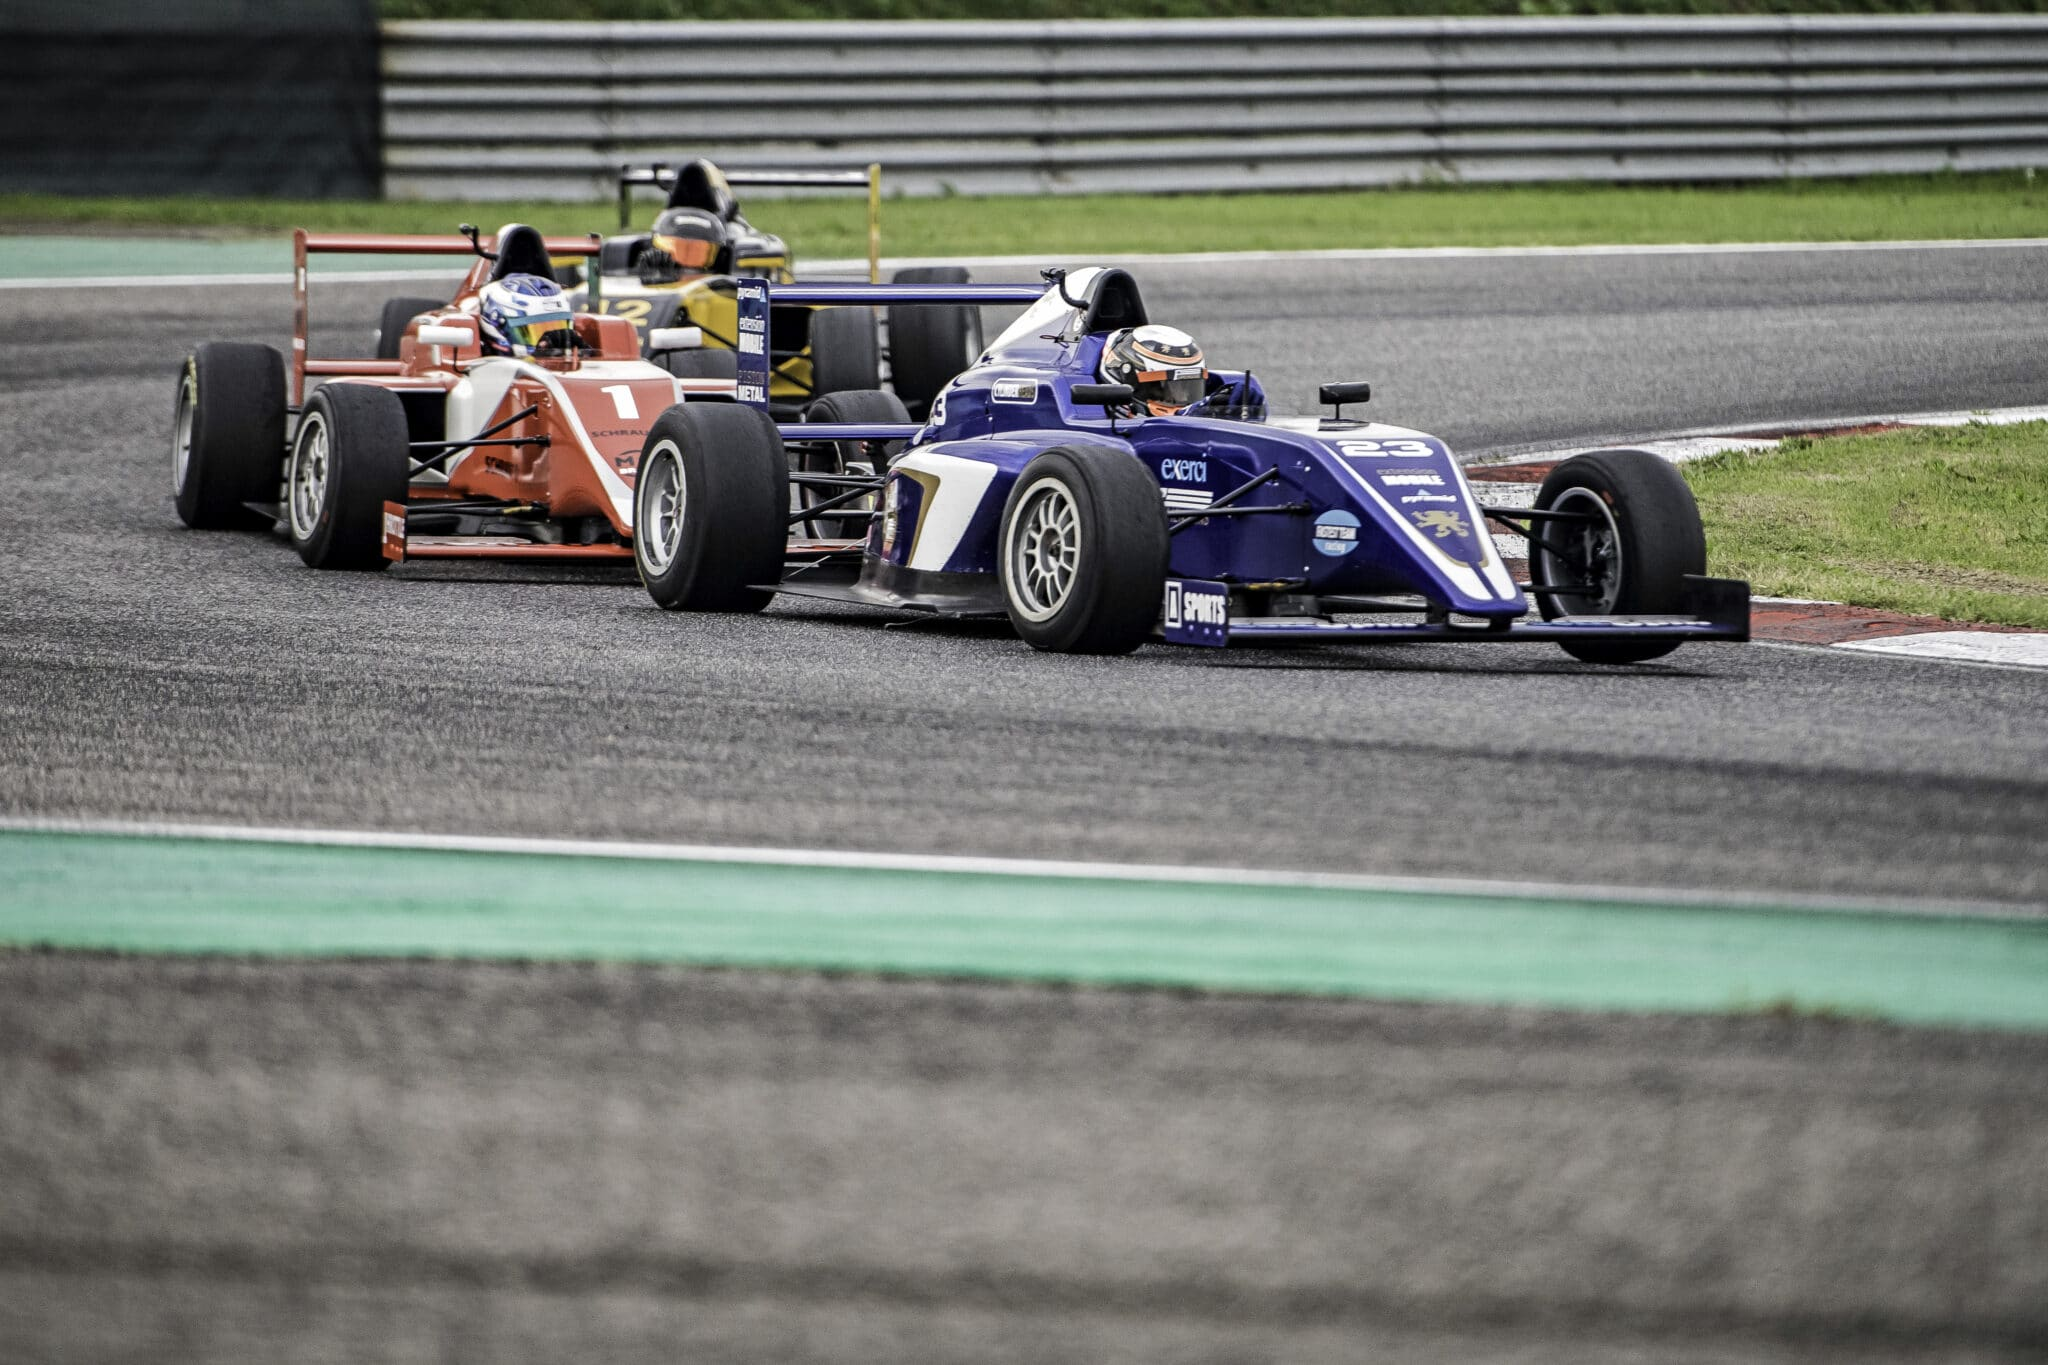 Three open-wheel formula race cars driving into a bend on a racing track.